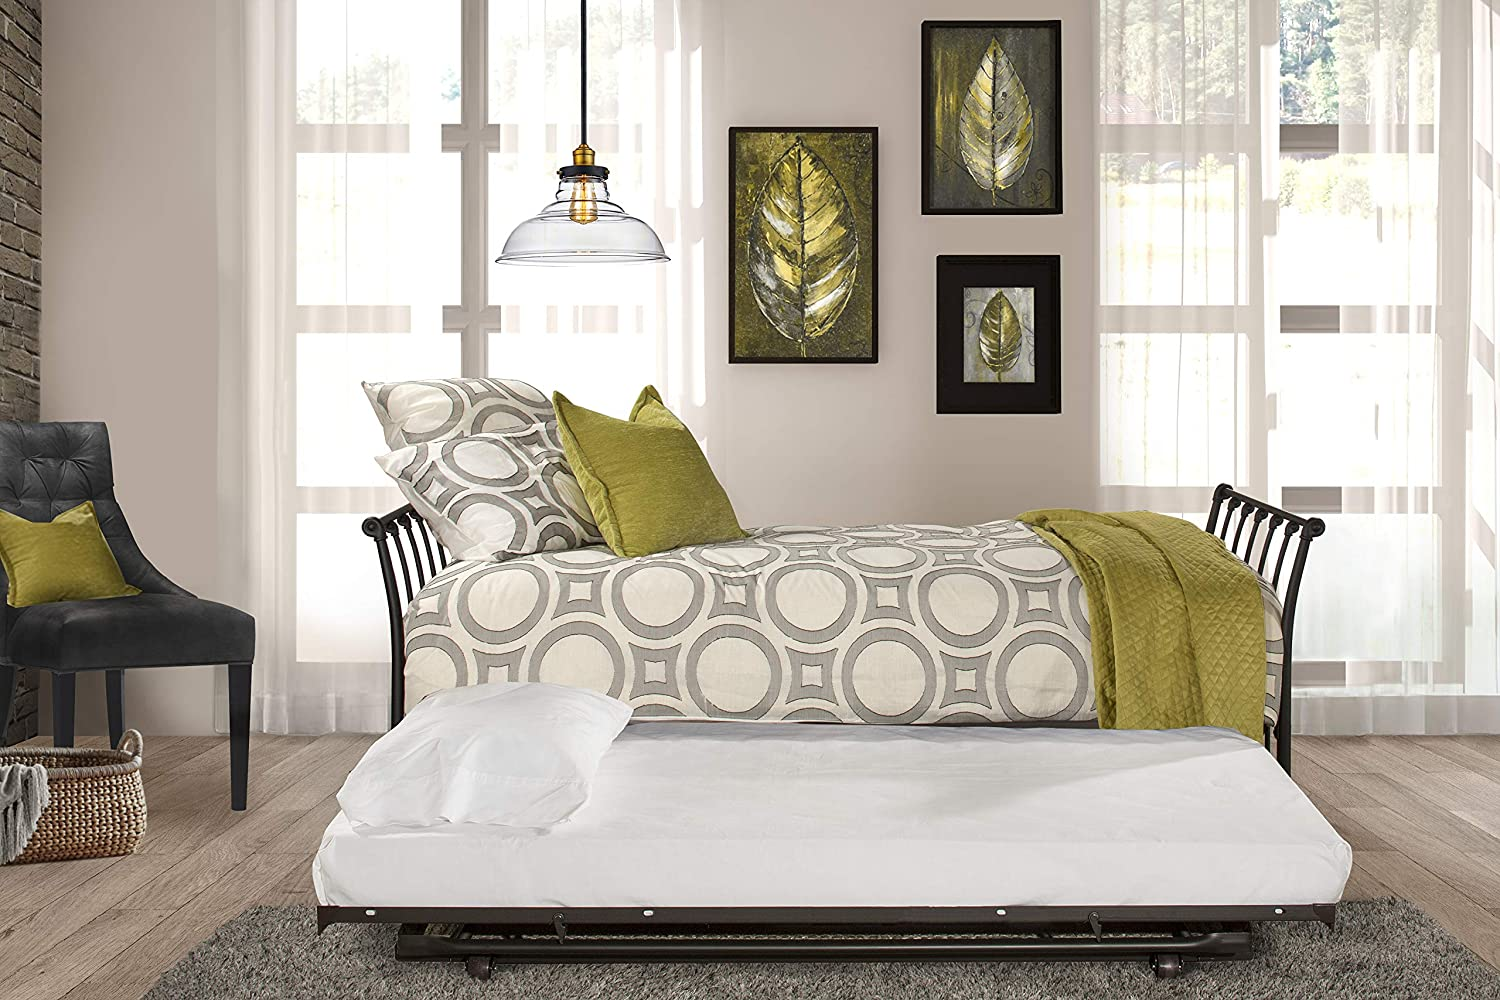 Hillsdale Genuine Furniture Midland Backless Daybed Trundle Twin Bl Max 59% OFF with